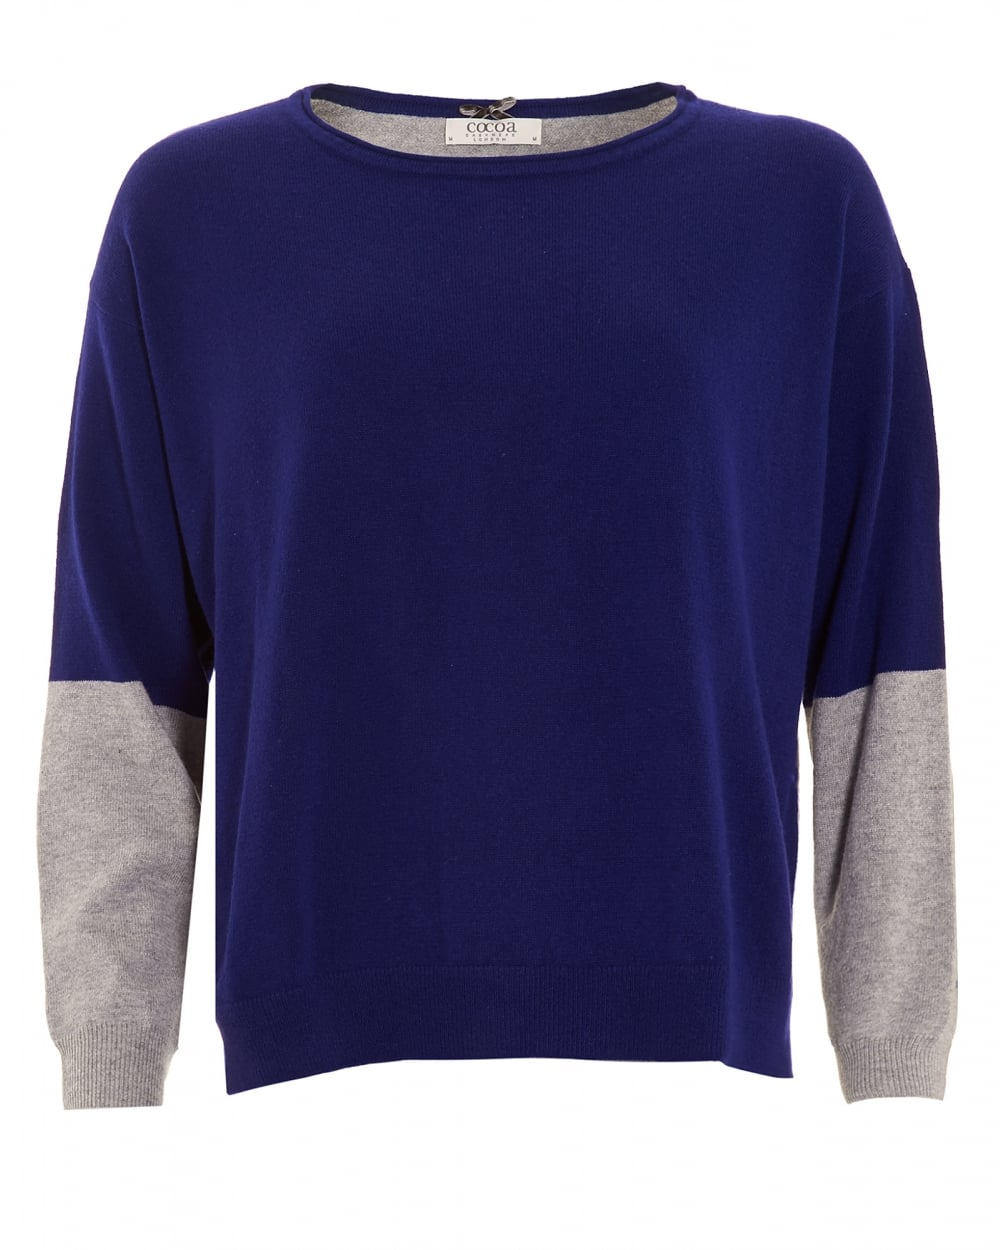 Cocoa Cashmere Womens Jumper, Colour Block French Navy Grey Sweater